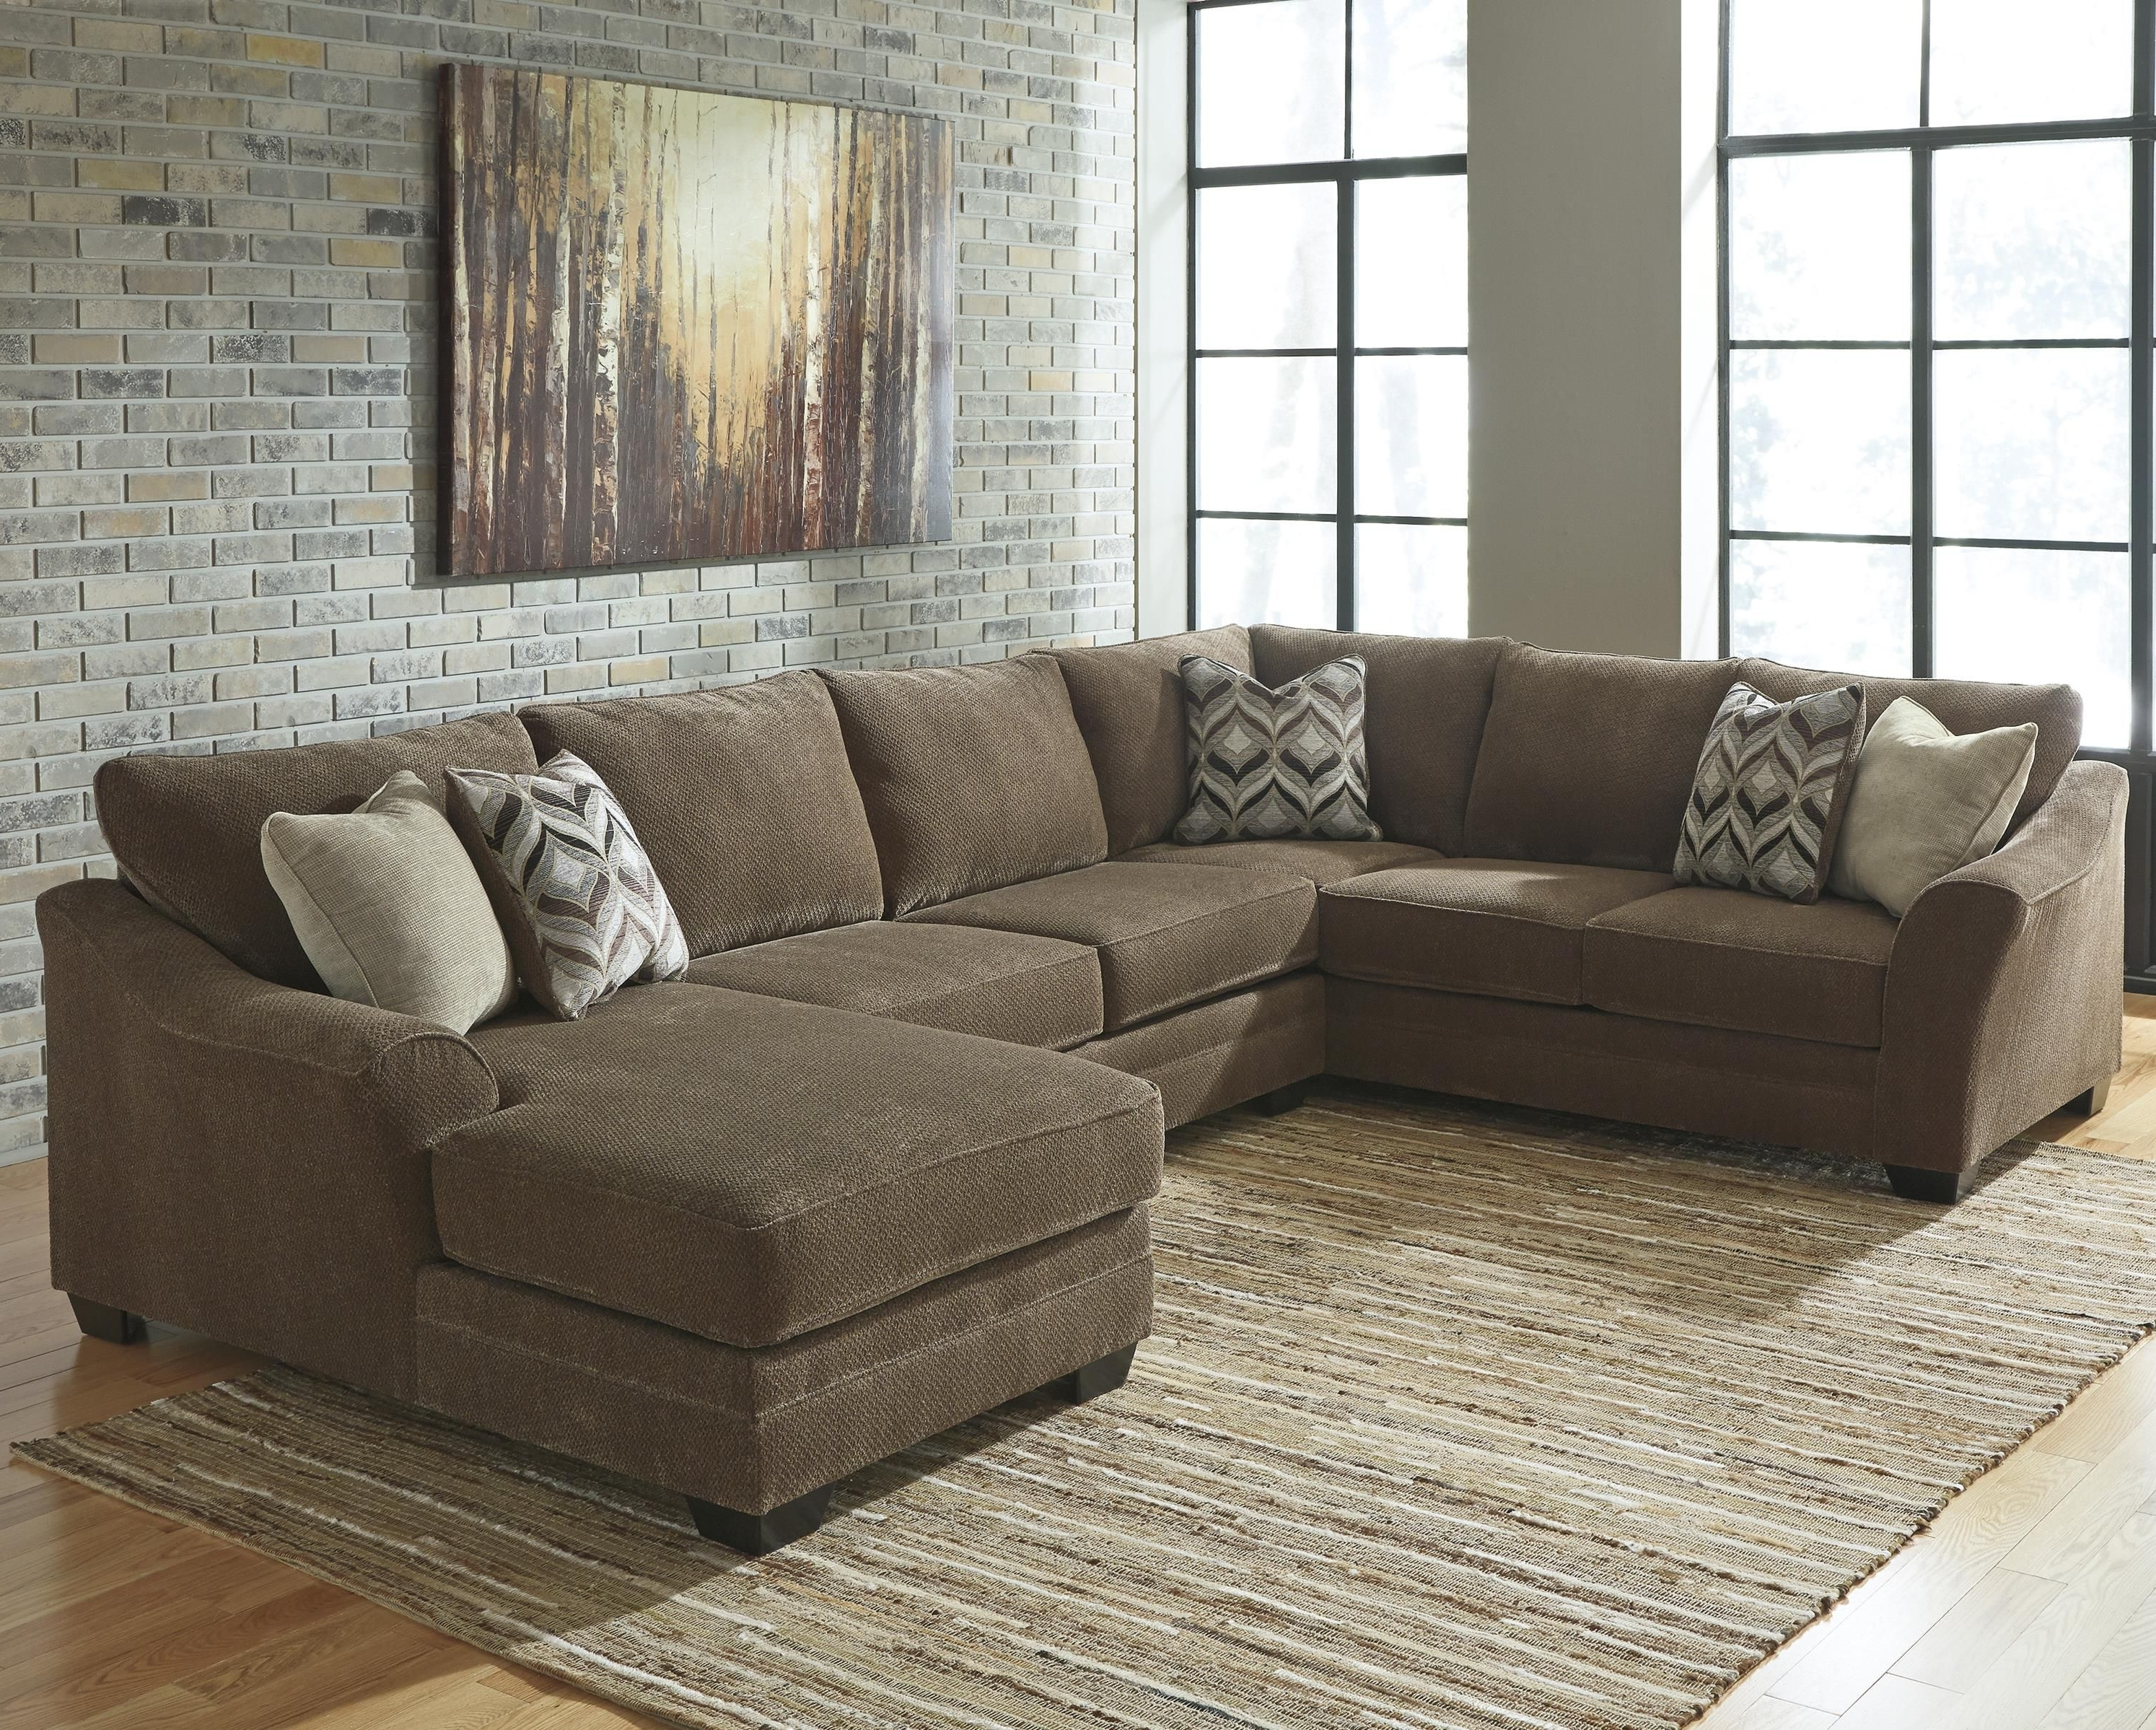 Well Known Justyna Contemporary 3 Piece Sectional With Right Chaise Intended For Royal Furniture Sectional Sofas (View 4 of 15)